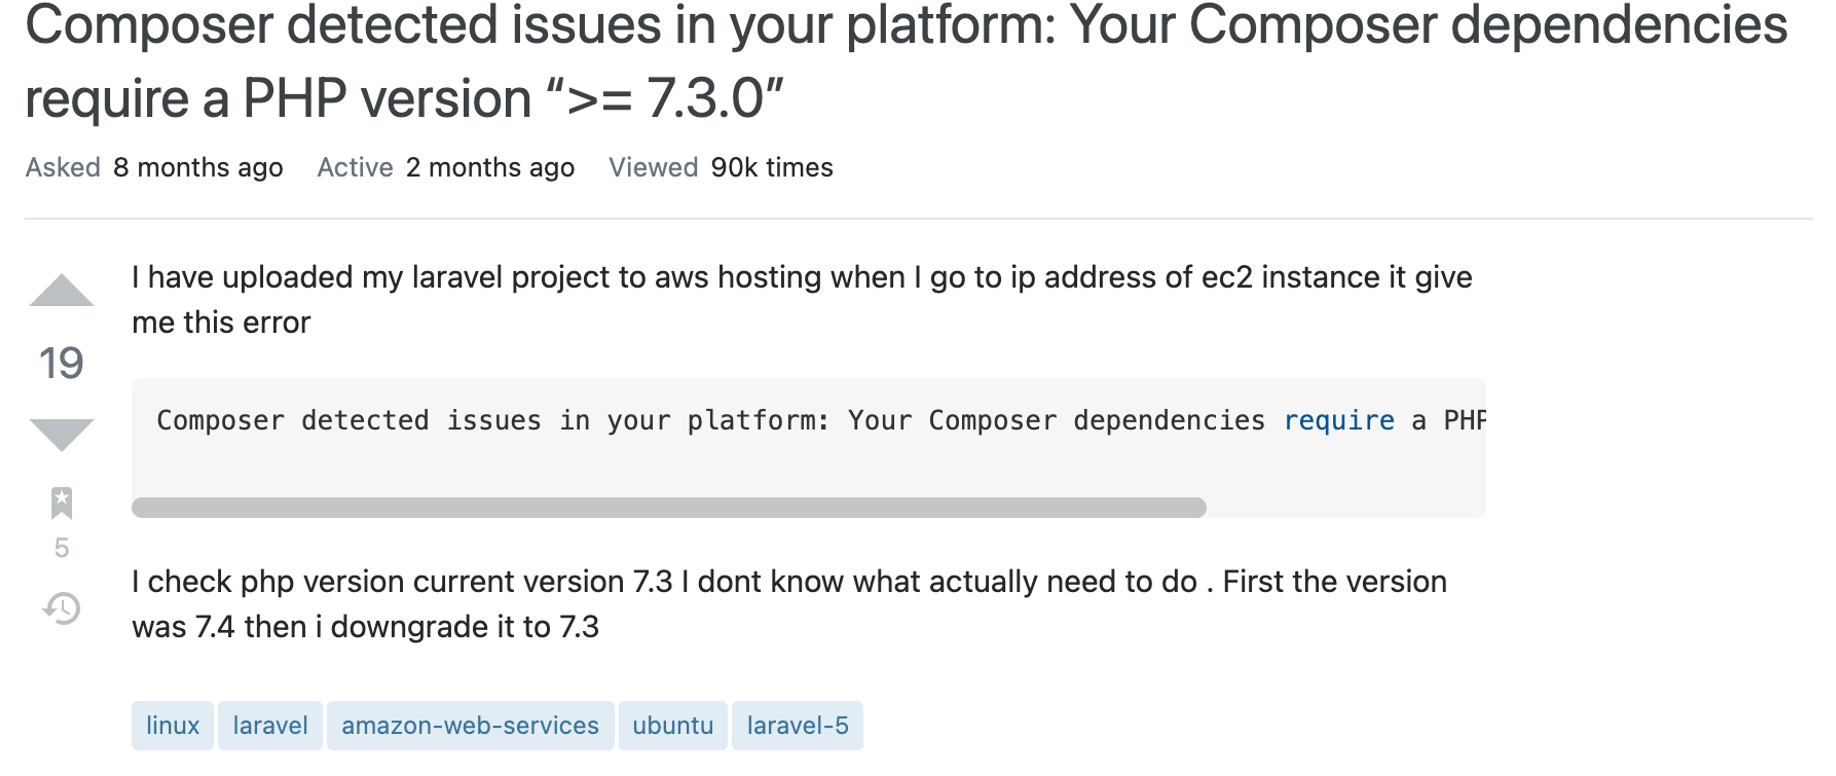 """Question text reads: I have uploaded my laravel project to aws hosting when I go to ip address of ec2 instance it give me this error  Composer detected issues in your platform: Your Composer dependencies require a PHP version """">= 7.3.0"""".  I check php version current version 7.3 I dont know what actually need to do . First the version was 7.4 then i downgrade it to 7.3"""